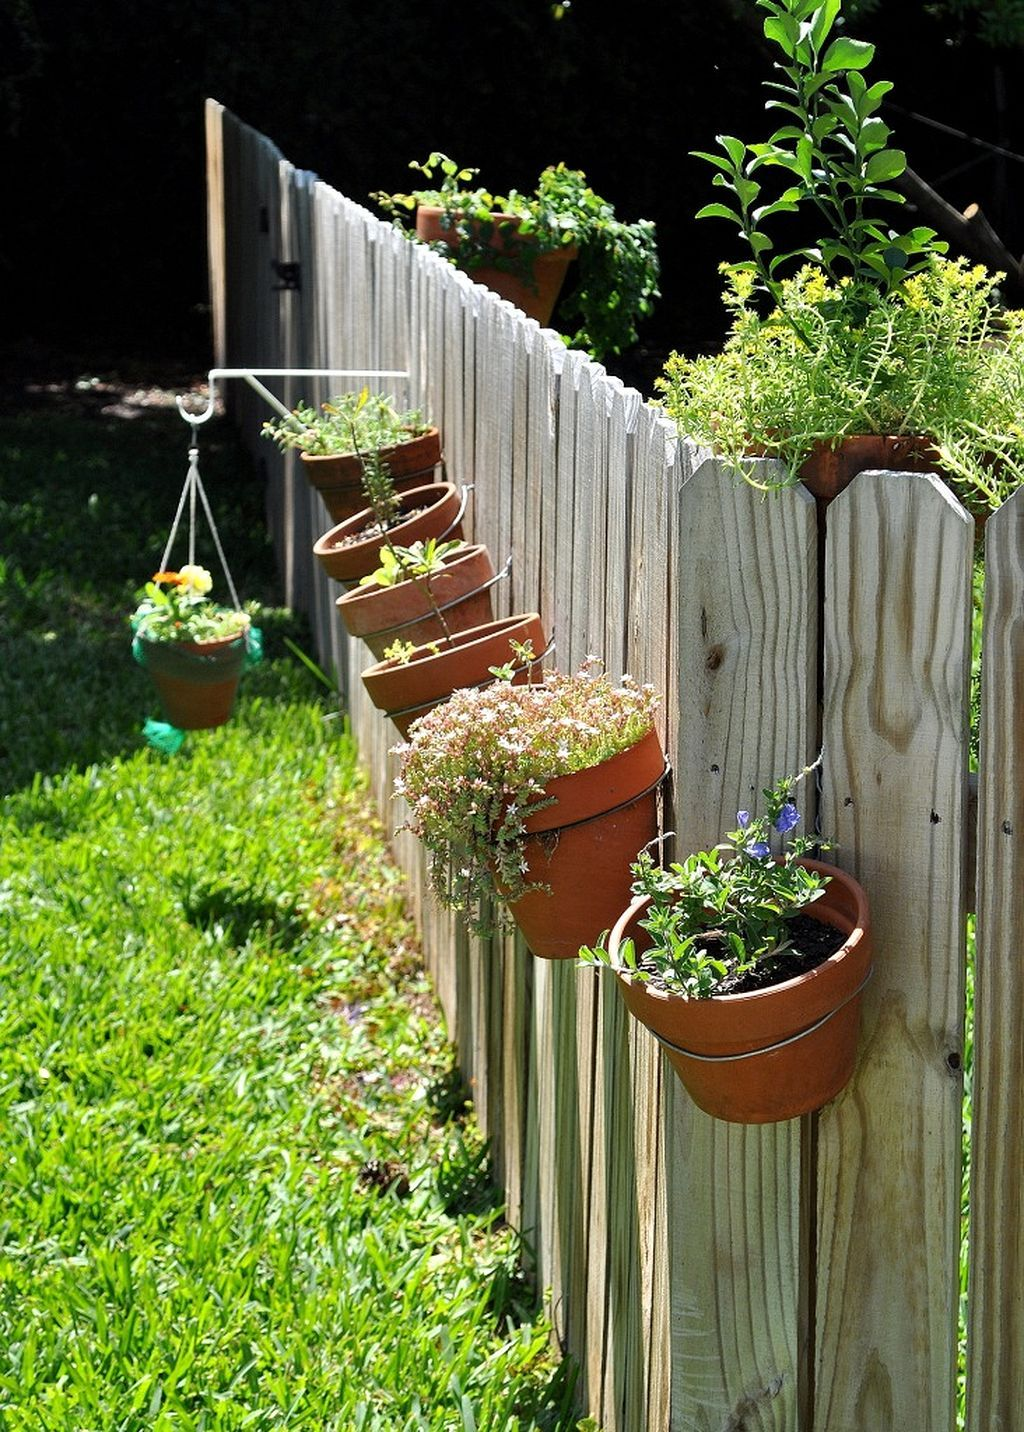 Awesome 27 Hanging Plants On The Fence Ideas Https Gardenmagz Com 27 Hanging Plants On The Fence Ideas Hanging Plants On Fence Fence Planters Hanging Plants